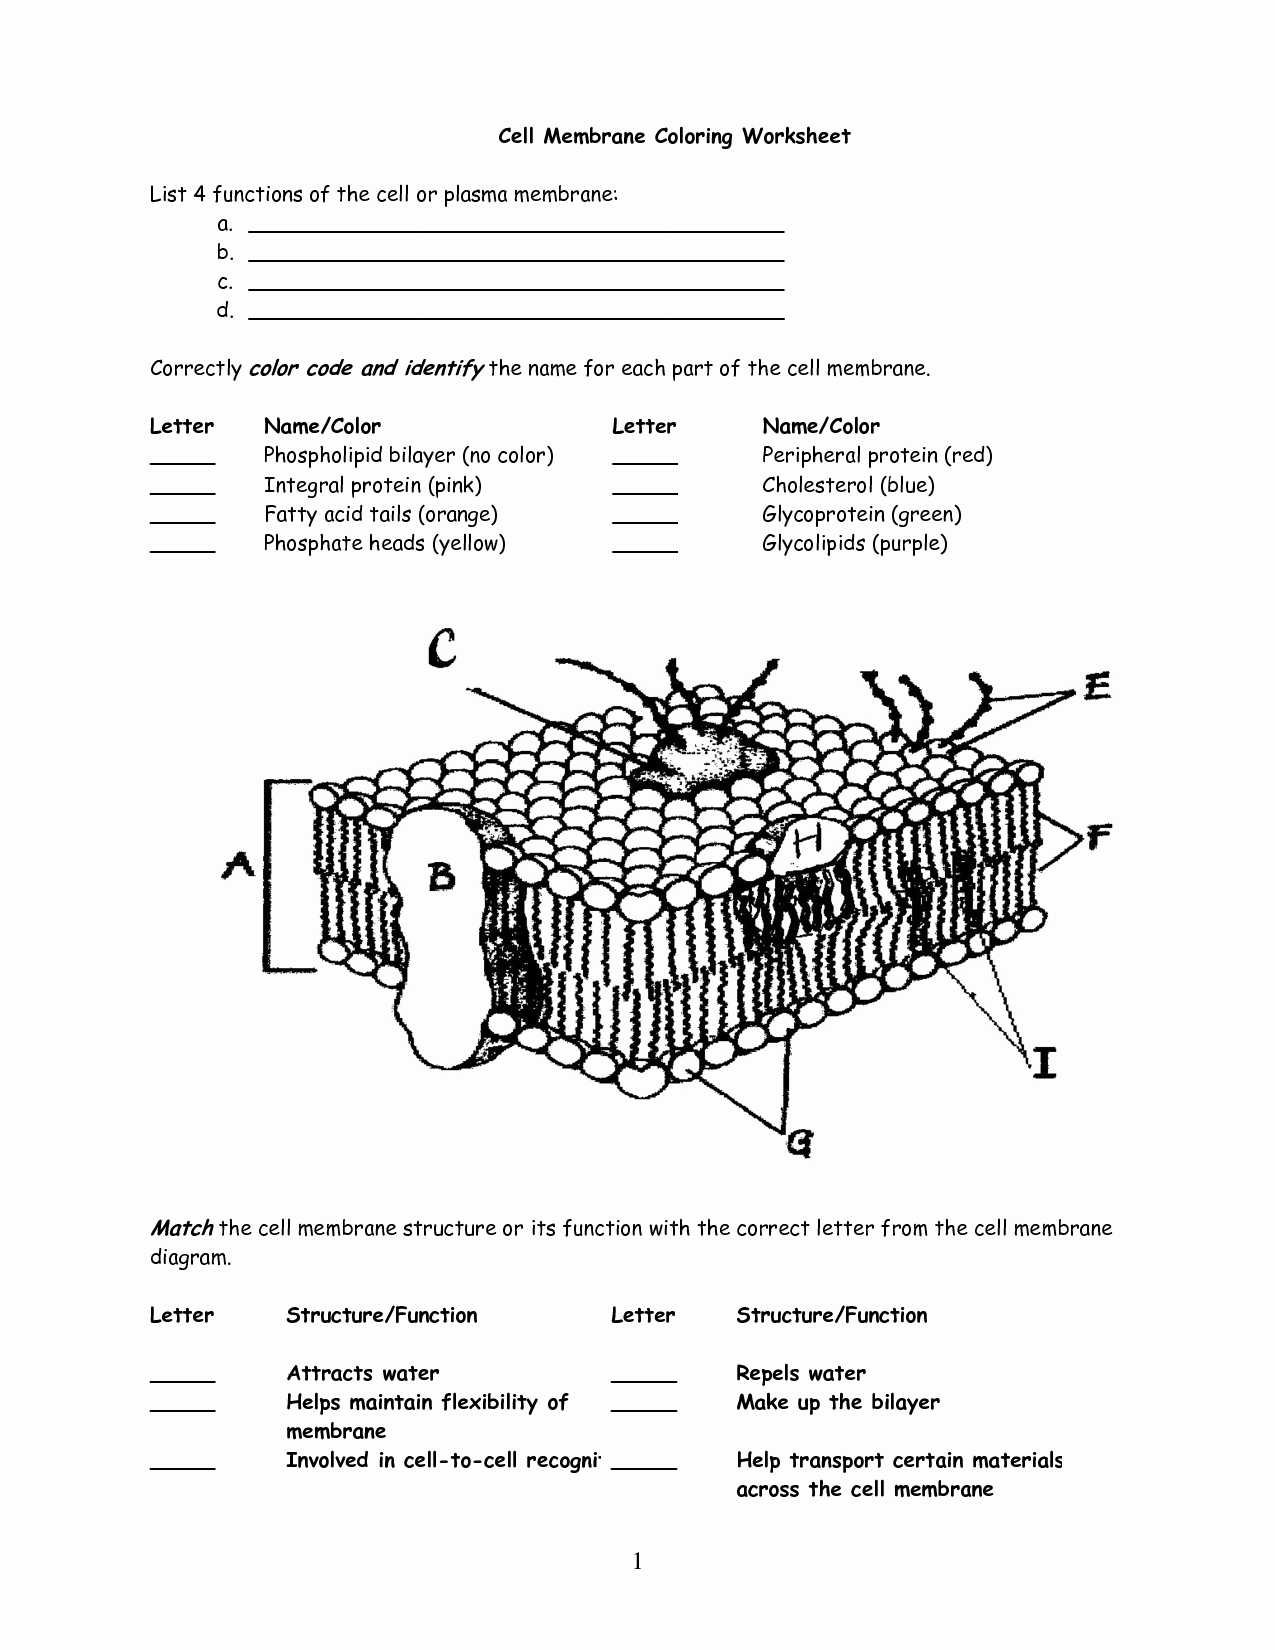 Cell Membrane Images Worksheet Answers Unique Paramecium Coloring Worksheet Key